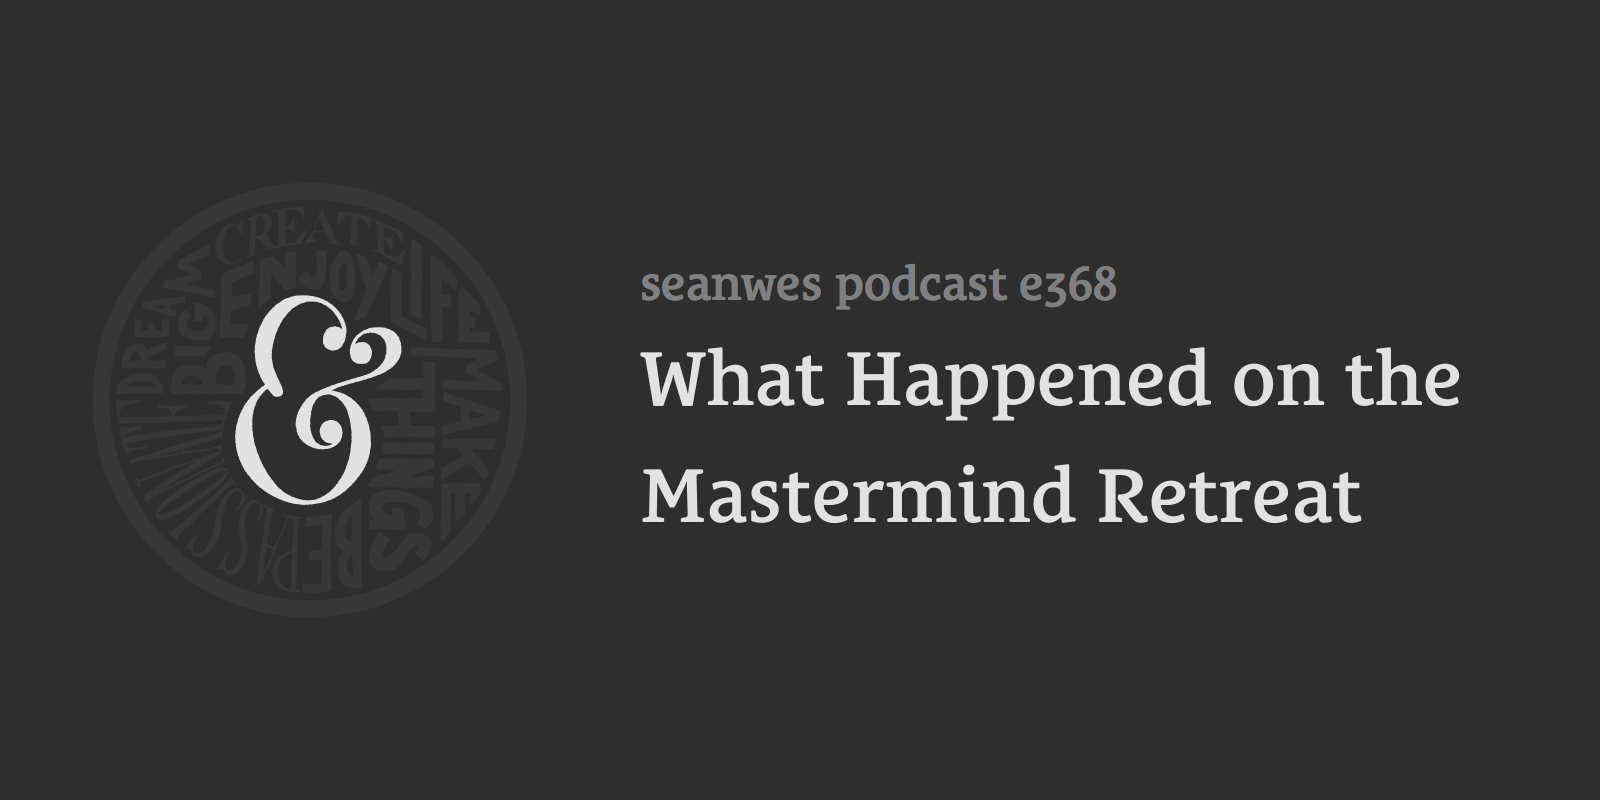 What Happened on the Mastermind Retreat